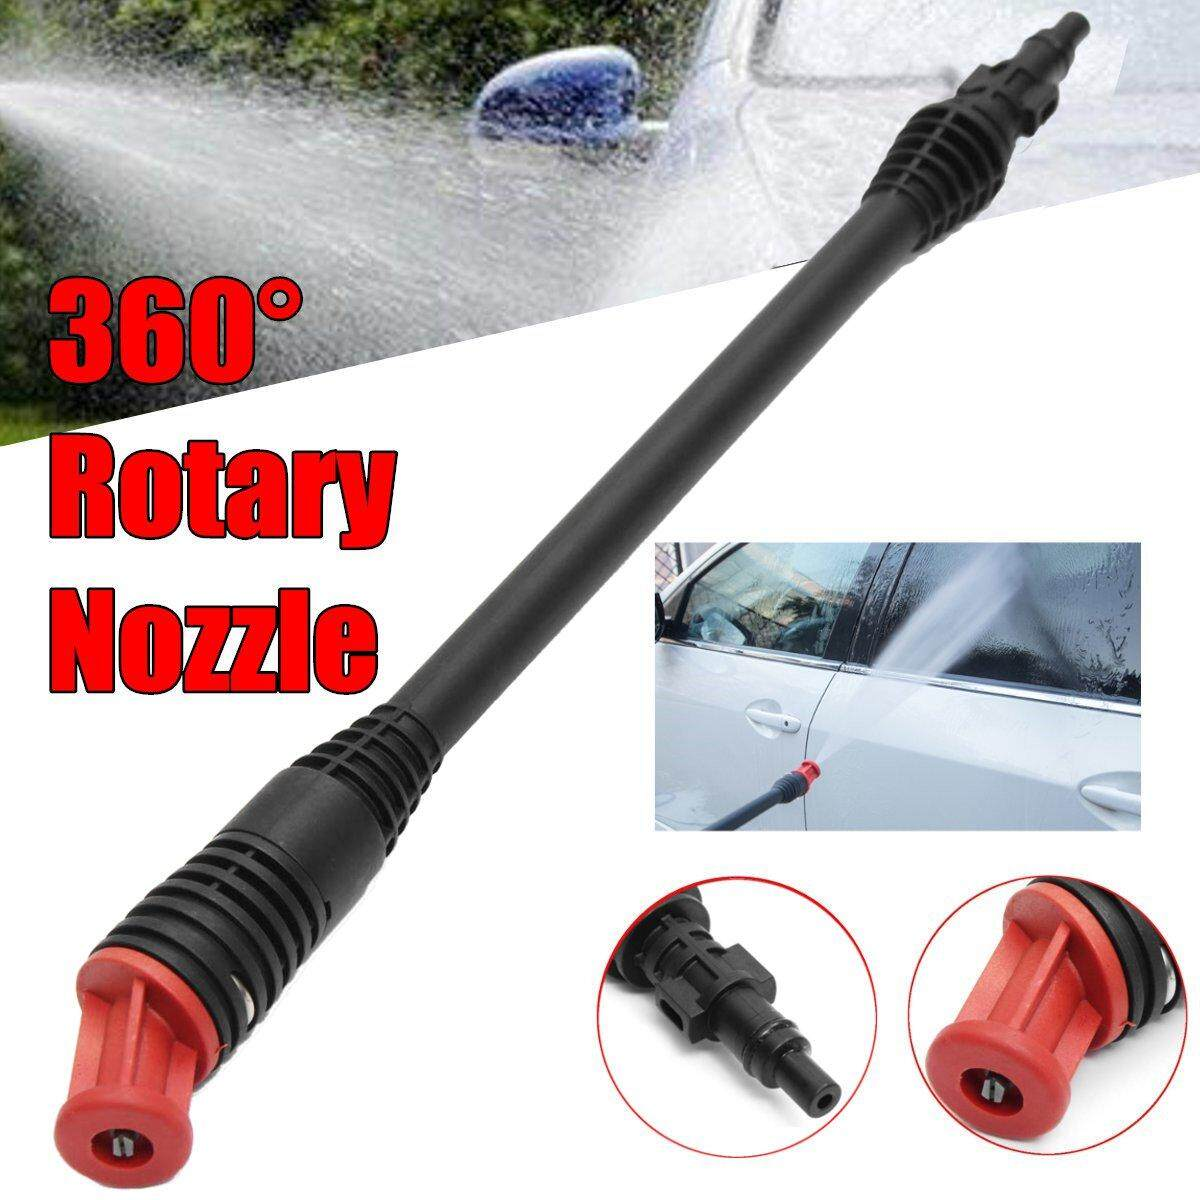 360 Rotary Nozzle Pressure Washer Lance For Lavor VAX